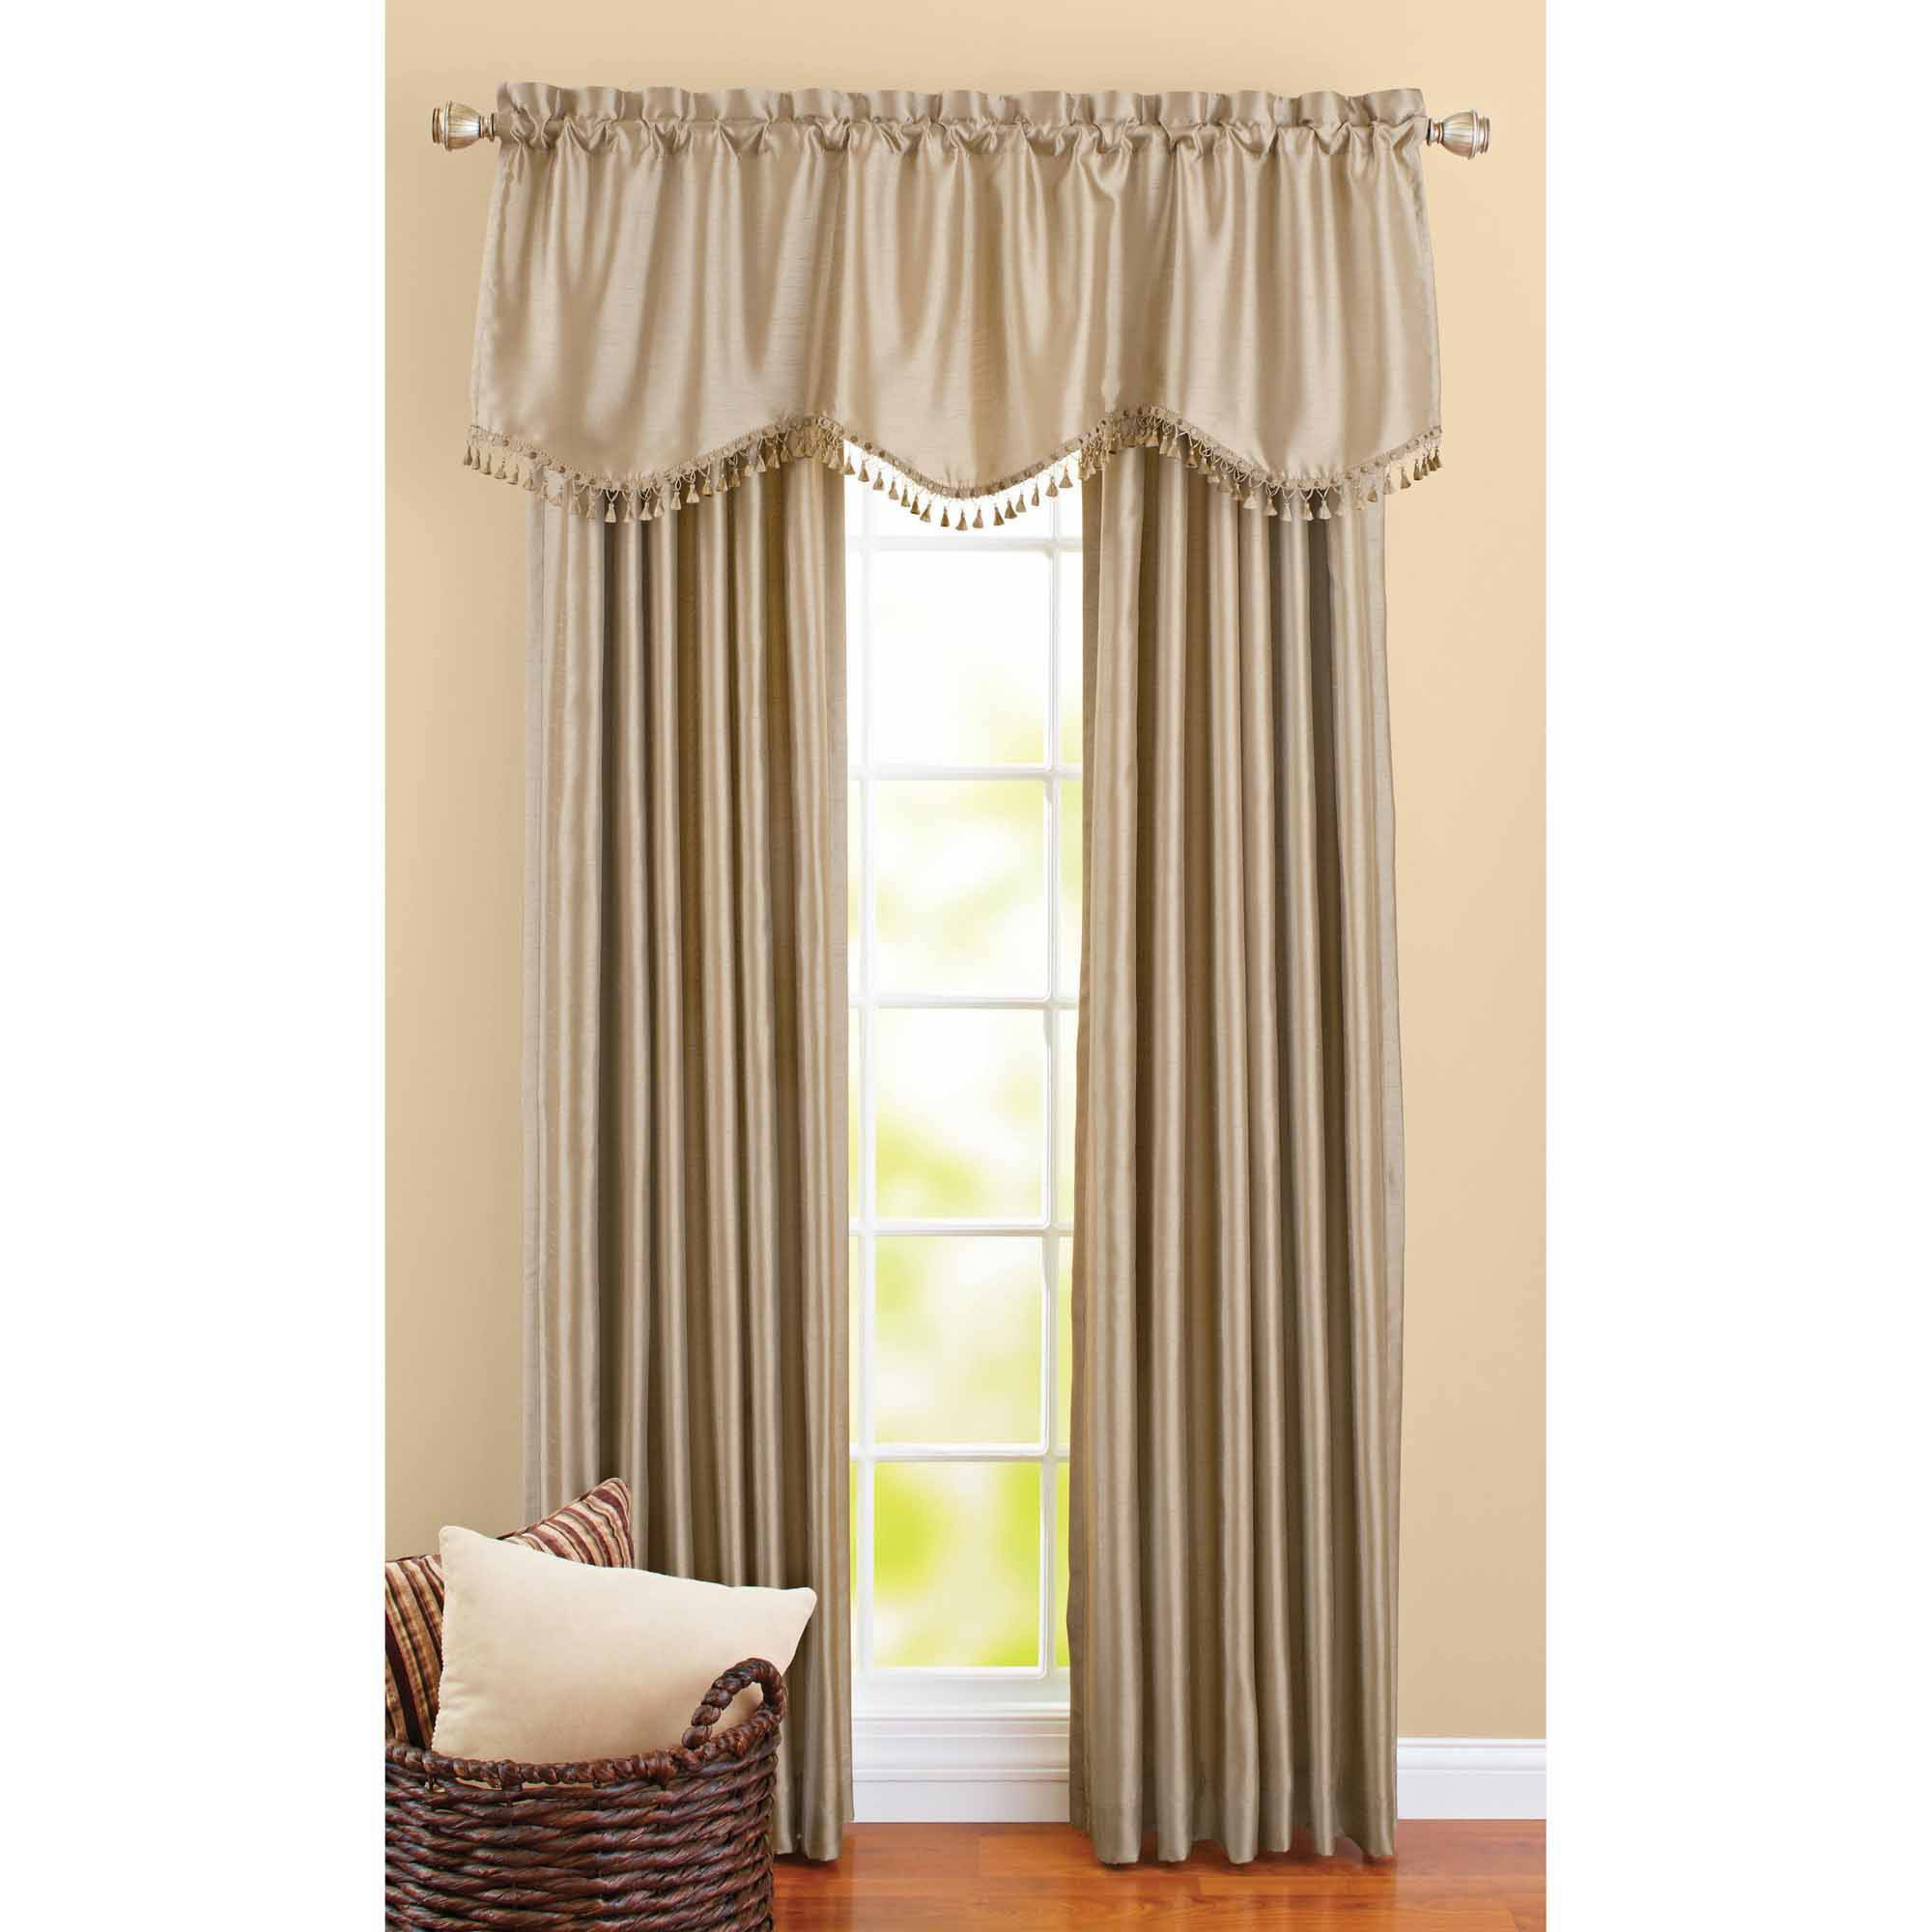 Better Homes and Gardens Crushed Taffeta Curtain Panel